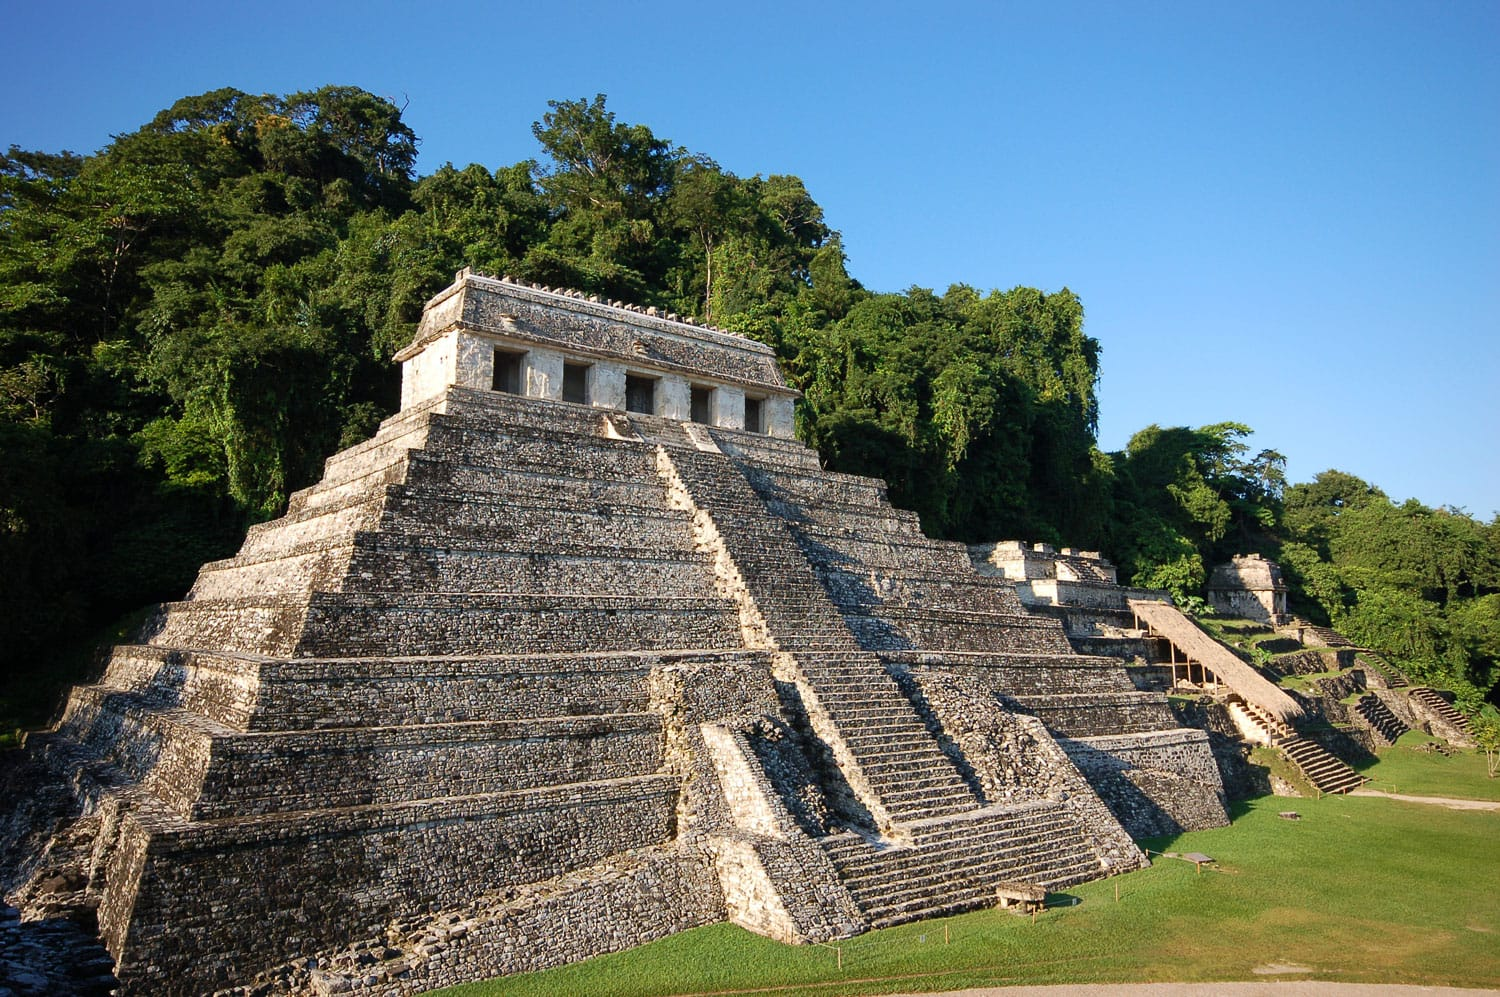 famous sights in mexico image collections